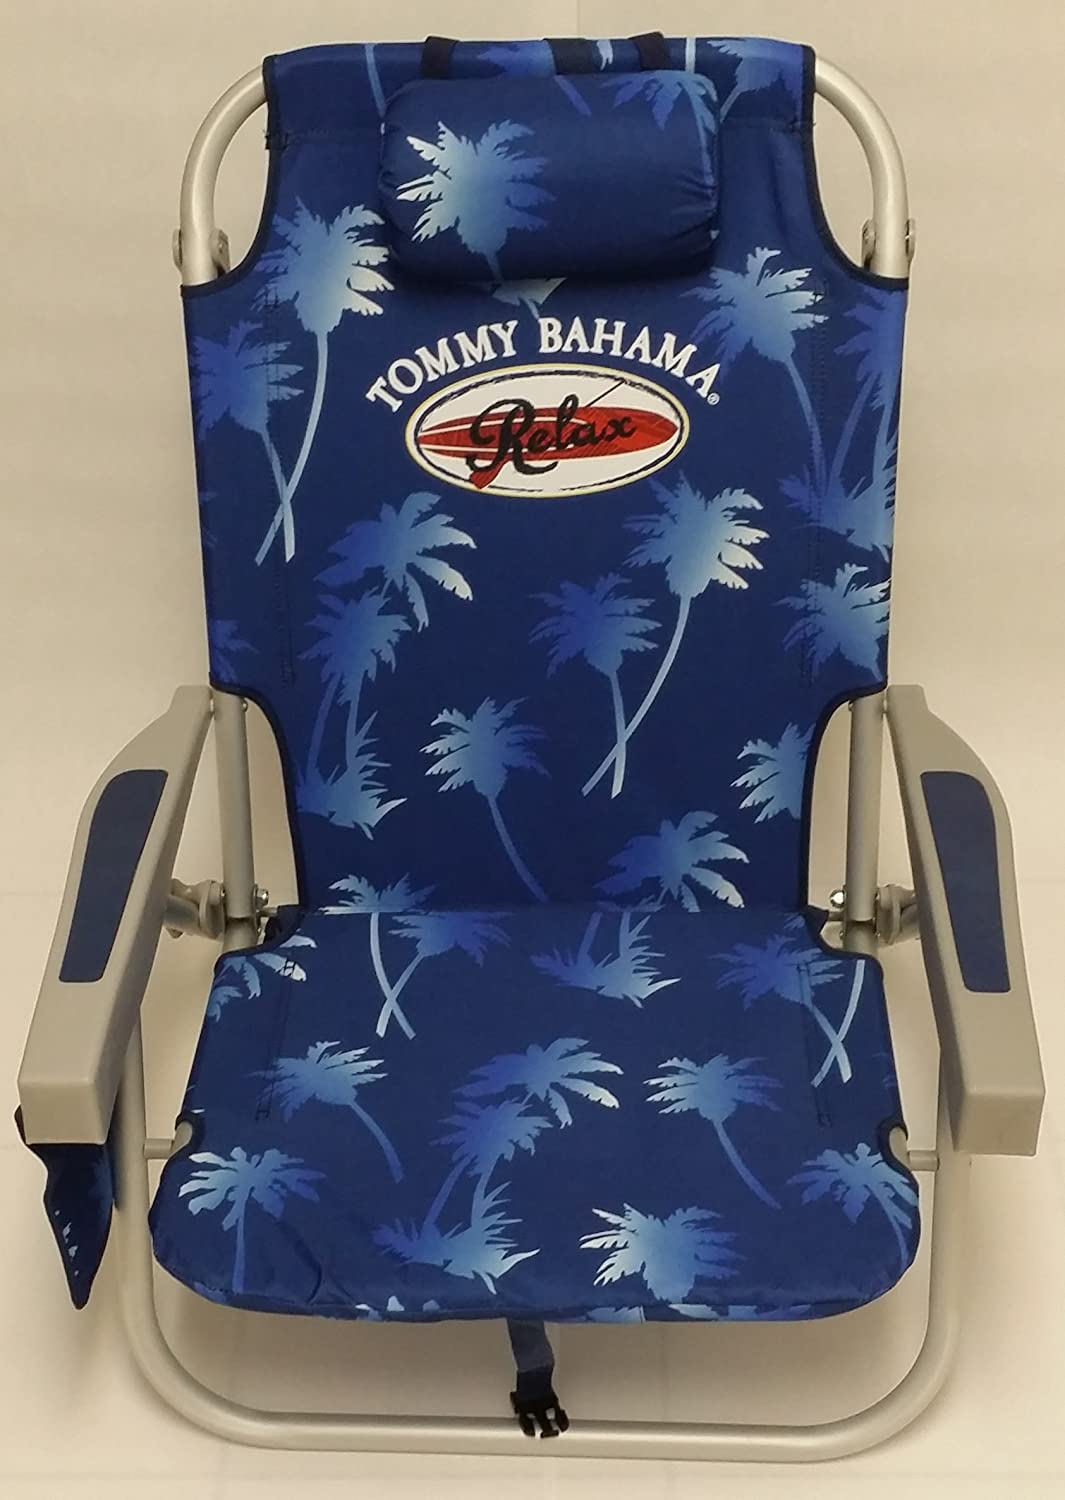 tommy bahama backpack cooler chair blue black folding covers for sale 2015 beach chairs seat